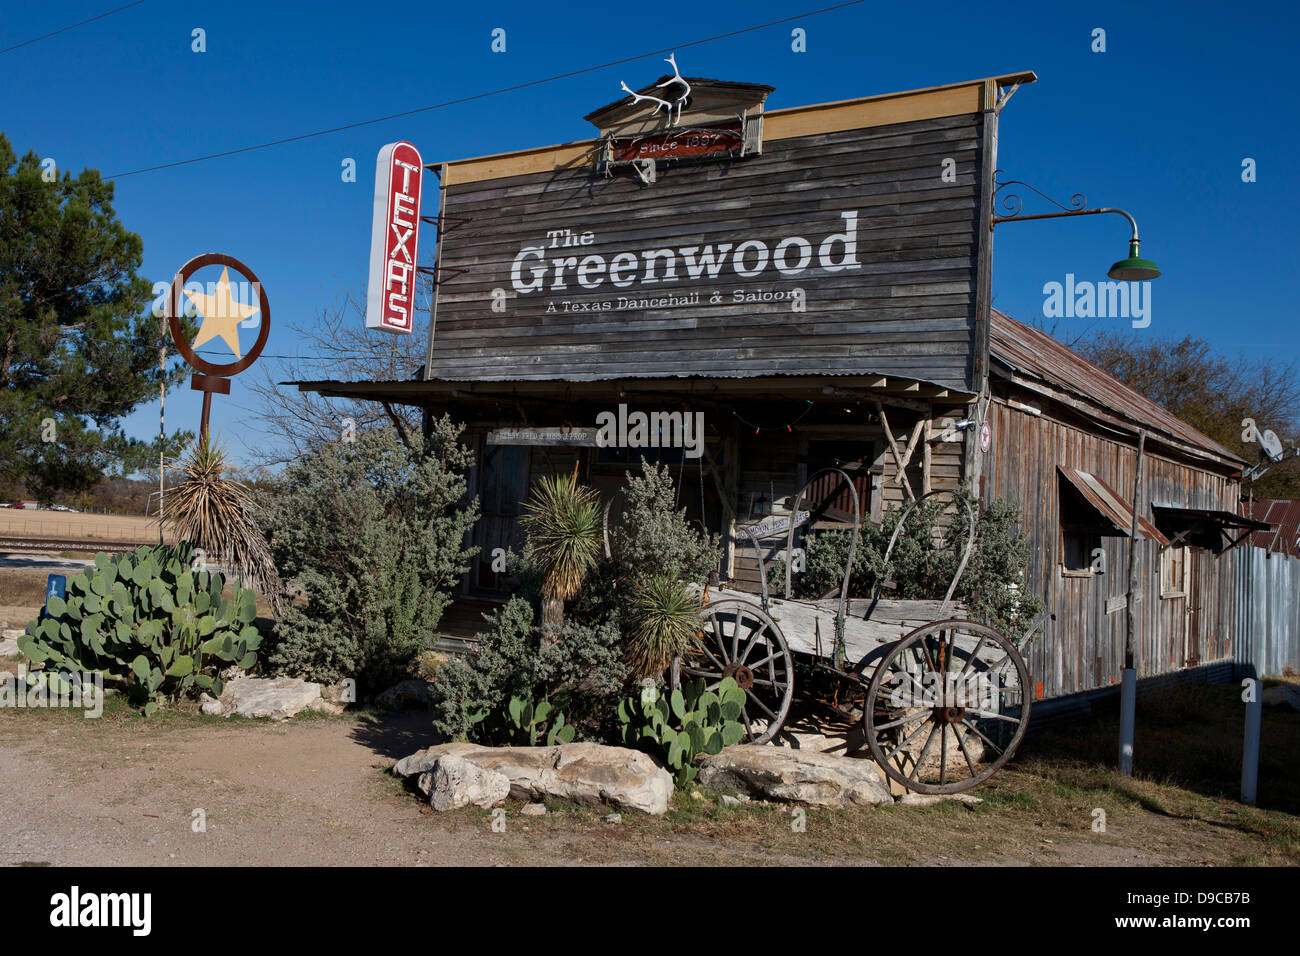 The Greenwood Dancehall and Saloon, Bluff Dale, Texas, United States of America - Stock Image